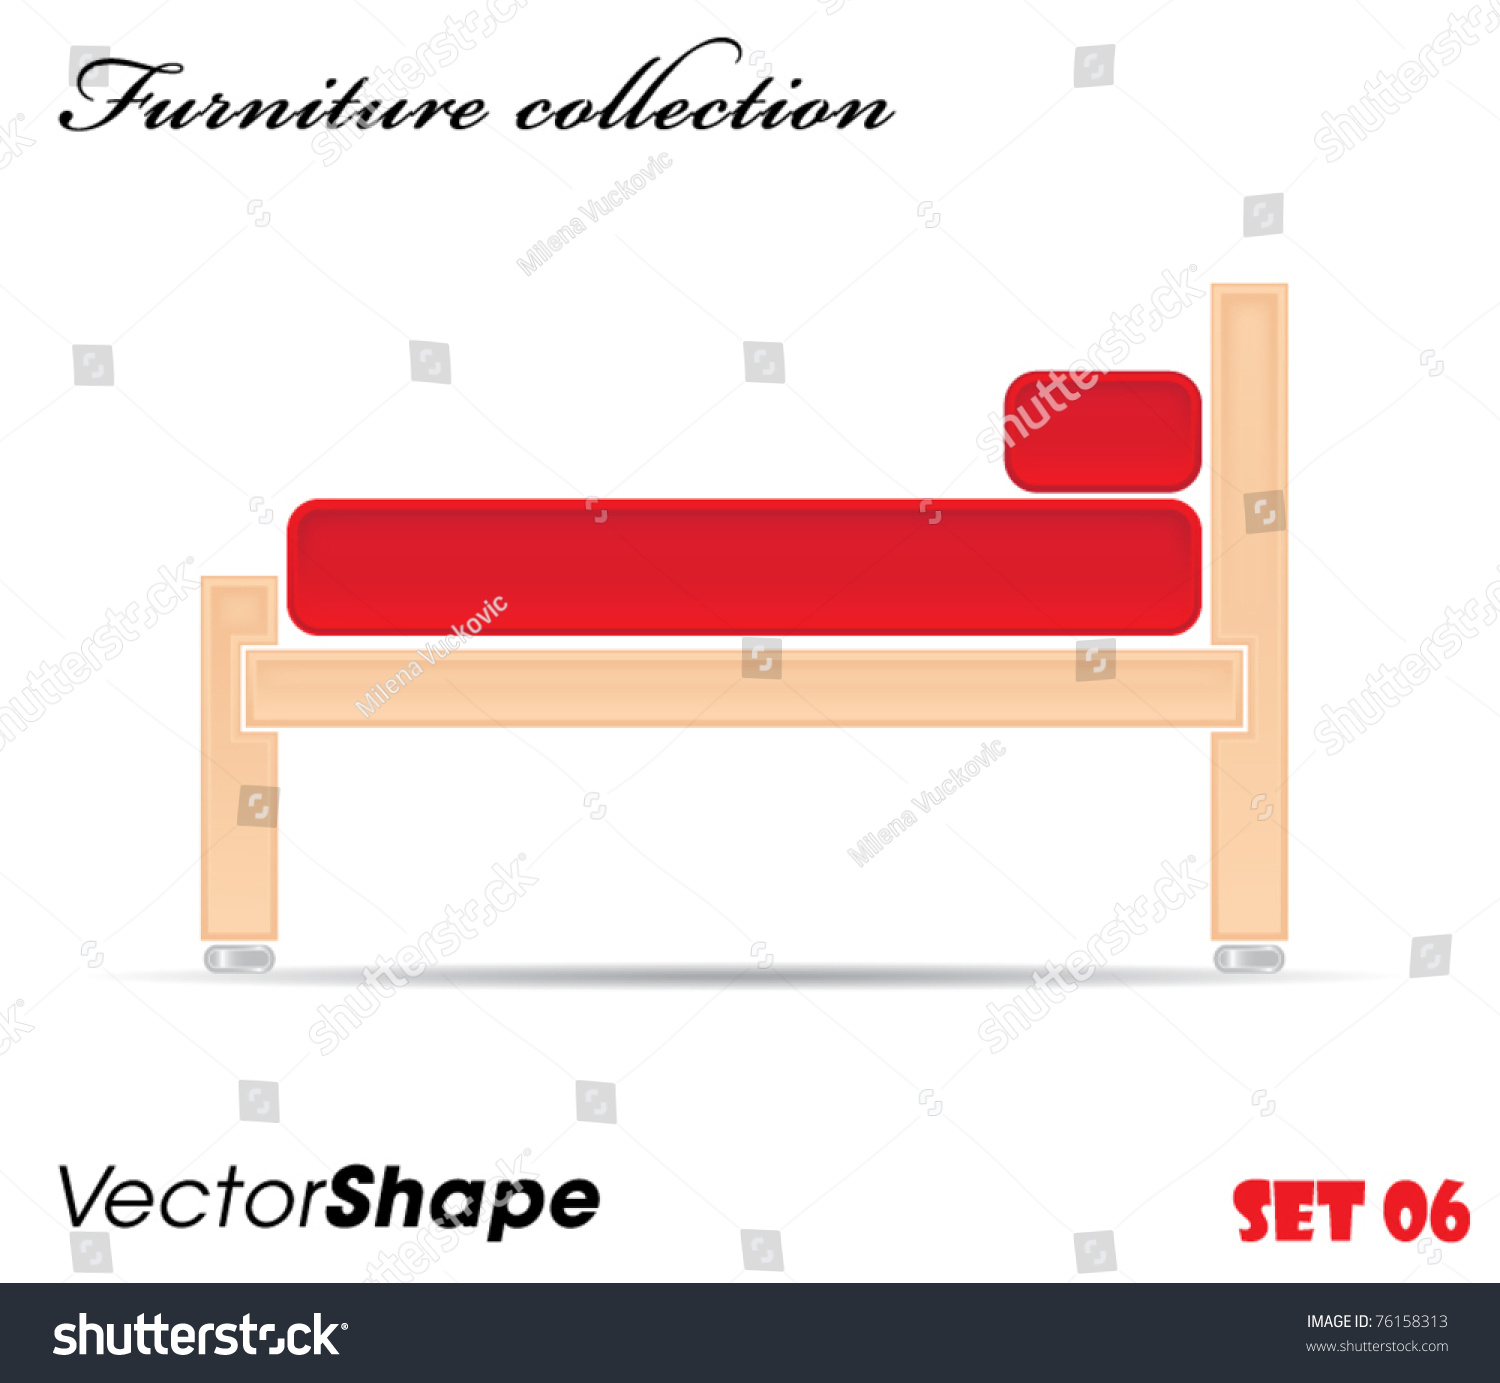 Interior Furniture Collection Icons, Single Or Double Bed. Pinterest Graduation Decorations. Top Grain Leather Living Room Set. Expanding Dining Room Table. Decorative Floor Outlet Covers. Cool Chairs For Rooms. Wedding Decoration. Decorative Screens And Room Dividers. Elegant Curtains For Living Room